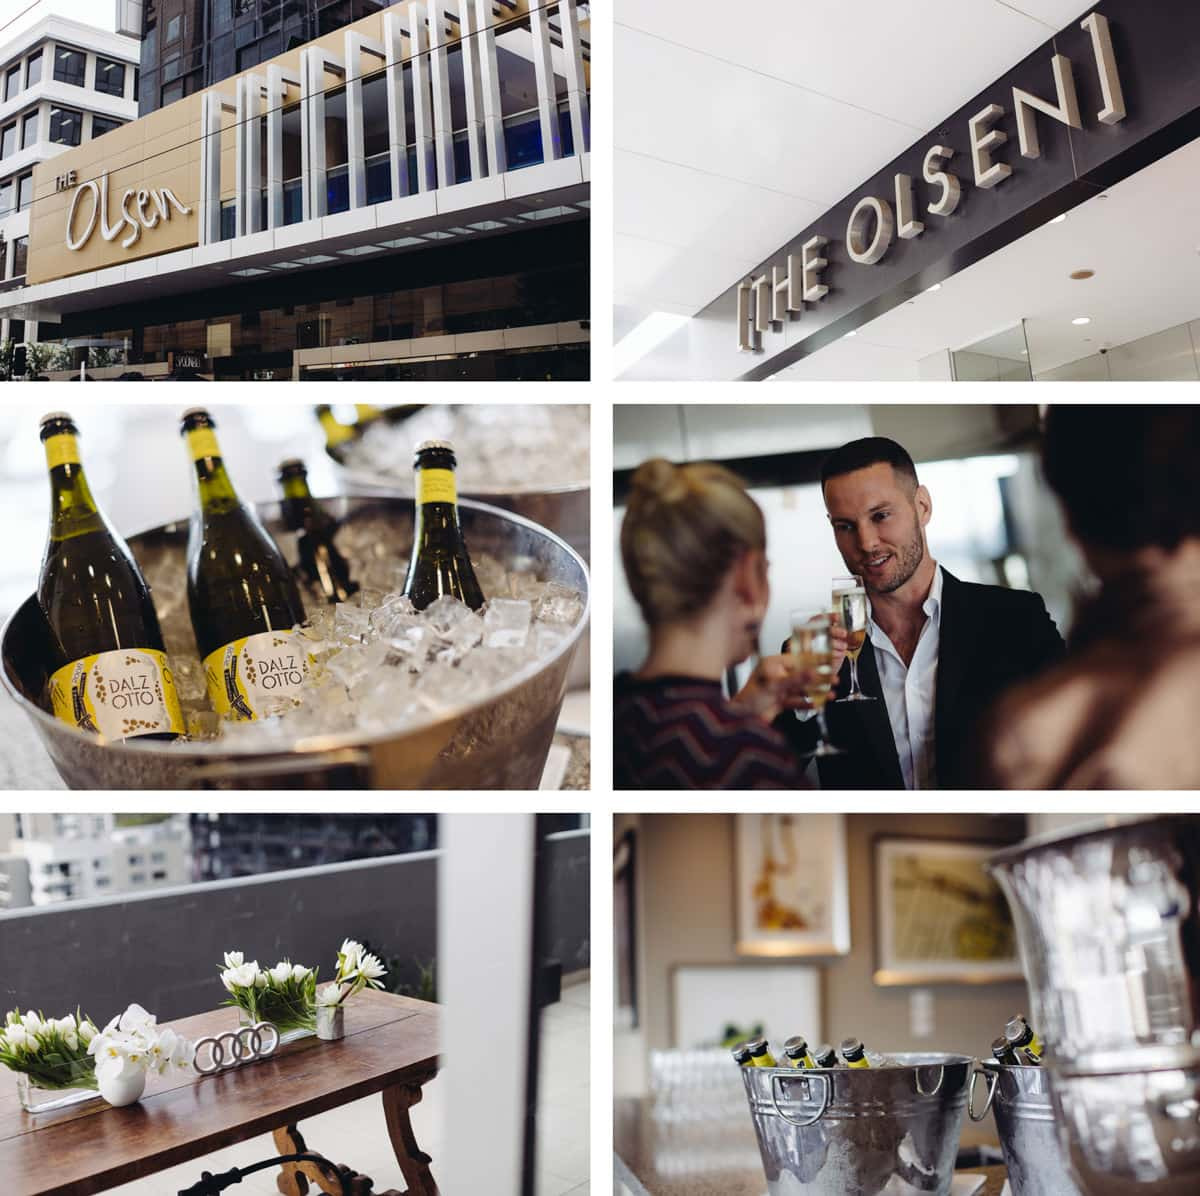 event photography at melbourne olsen hotel - art series hotels events